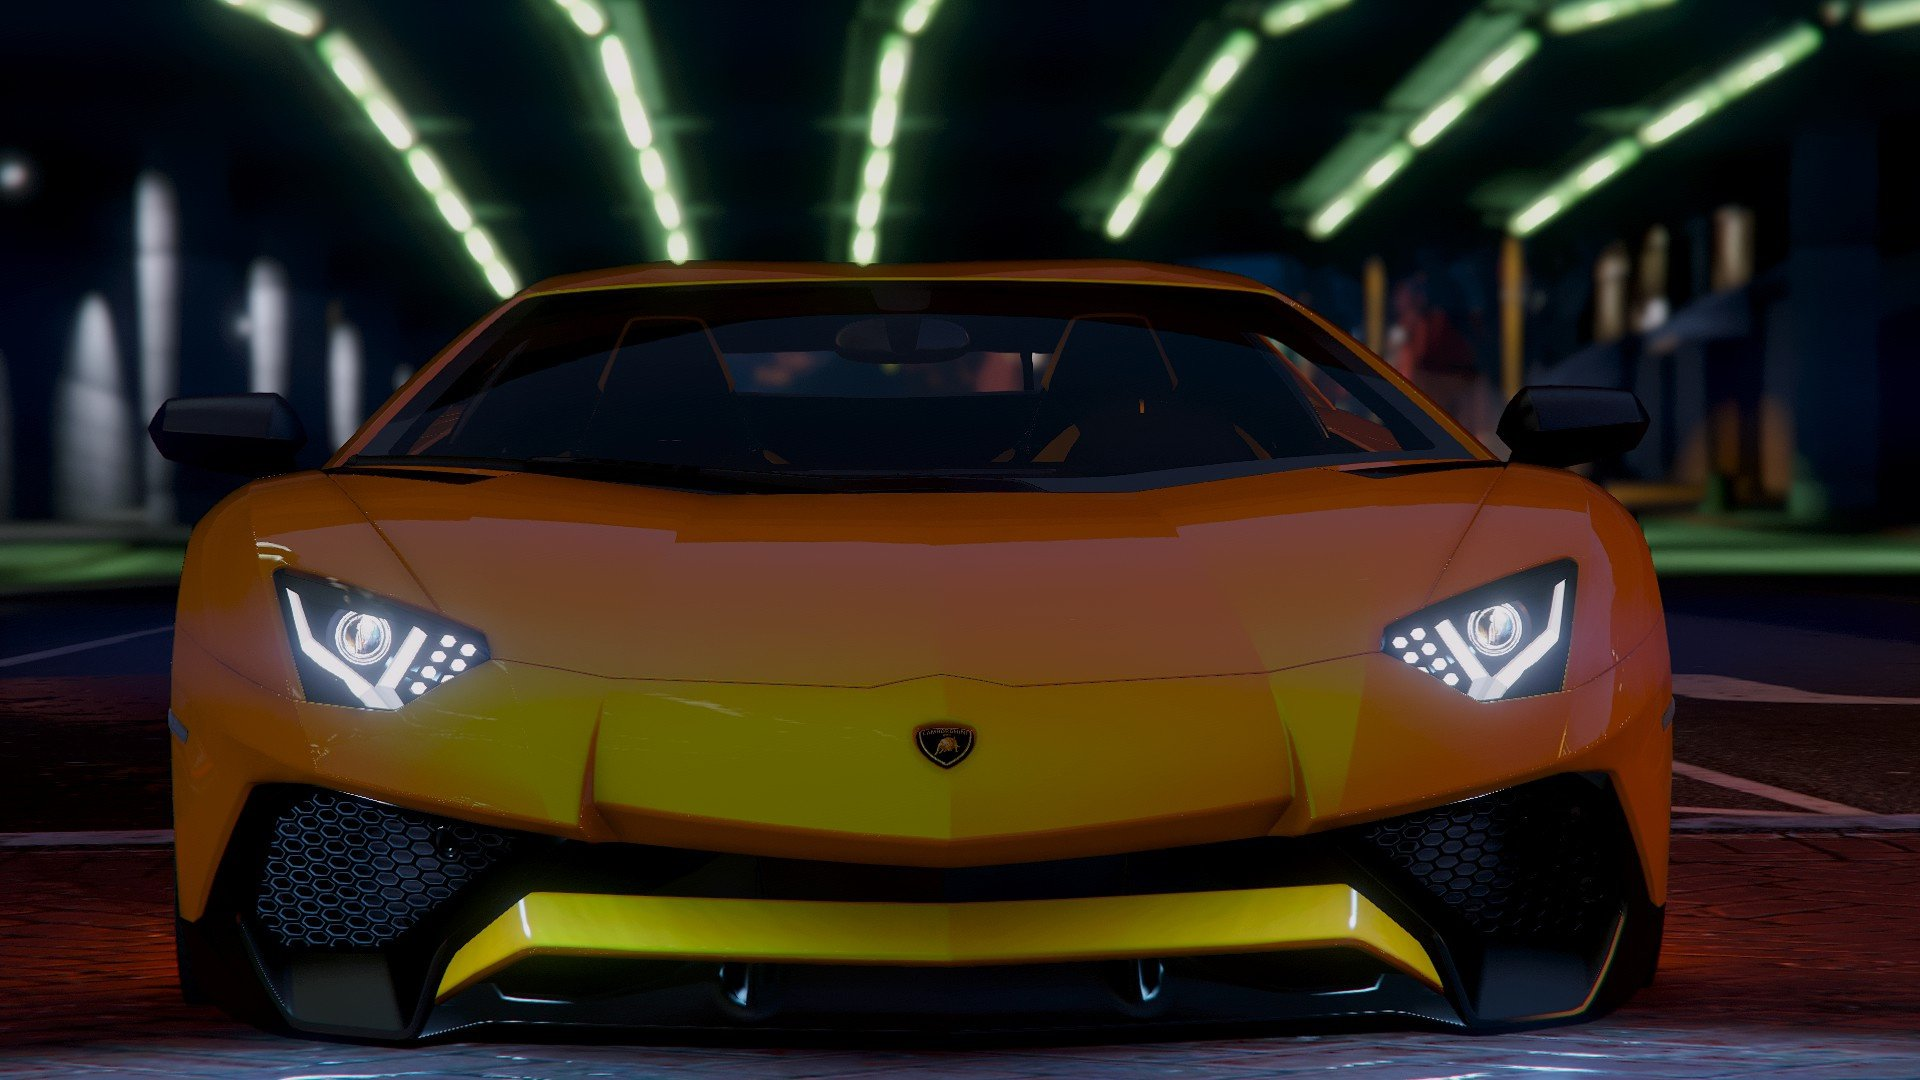 Lamborghini Aventador LP 750-4 SV 2015 [Add-On] для GTA V - Скриншот 2